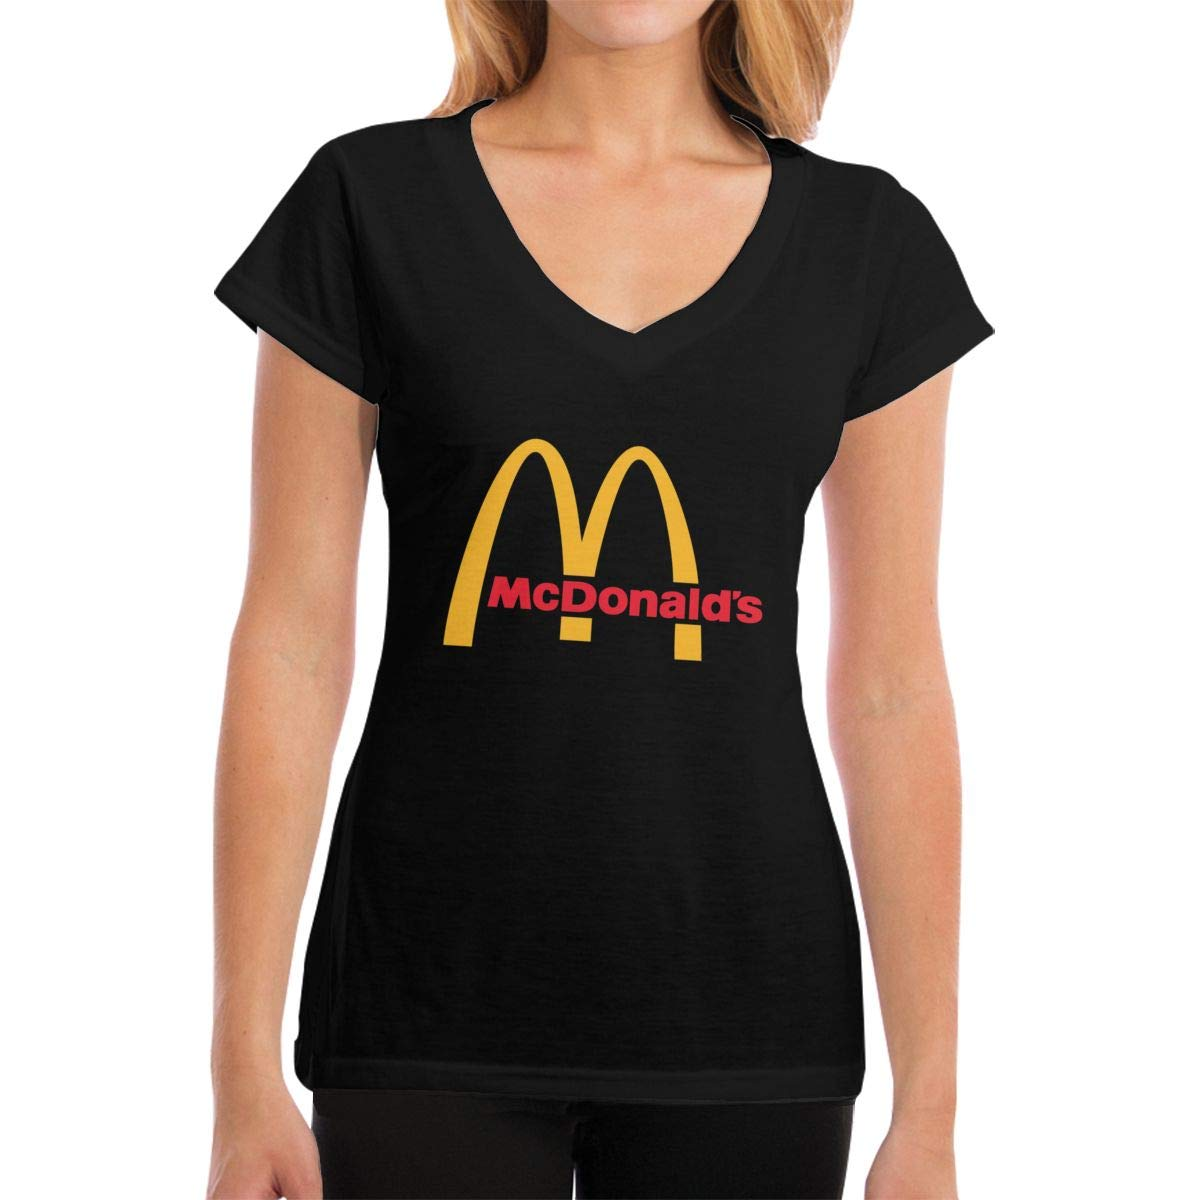 Lakssn Women's Youth Girls McDonalds Logo Tee Shirts Short Sleeve T Shirt for Women Girls T-Shirt Round Neck Cotton Tshirt Black S by Lakssn